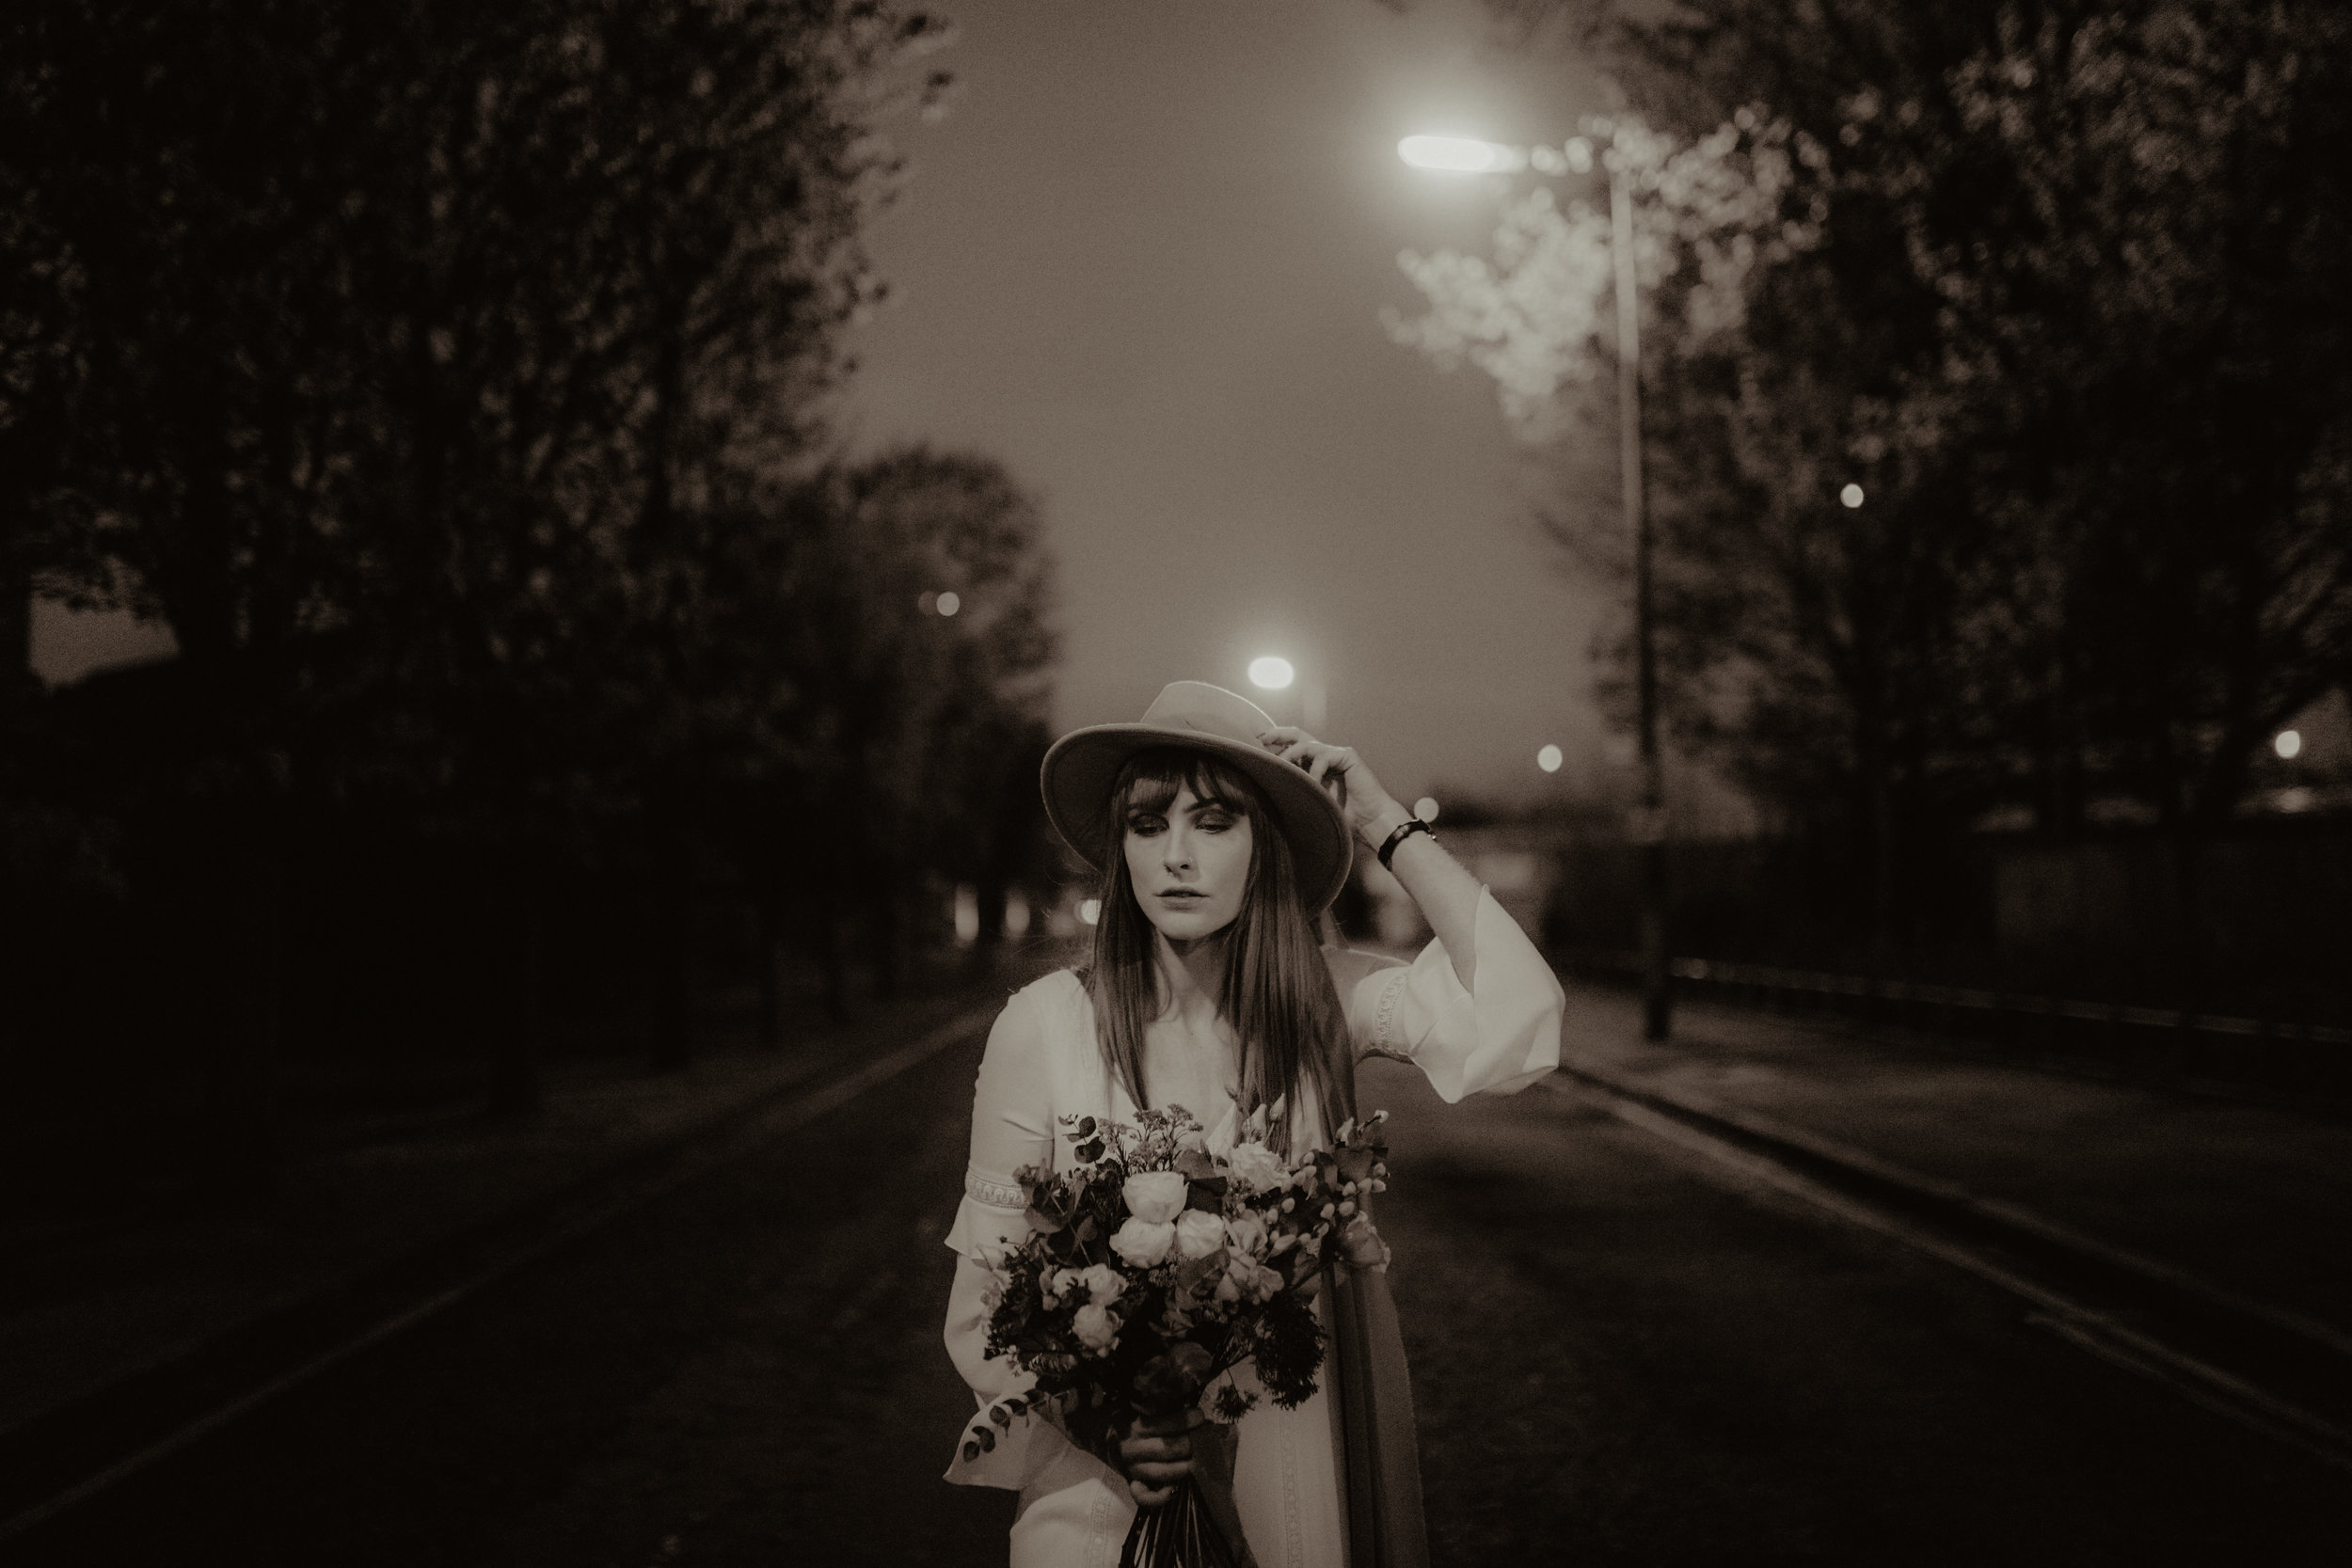 alt_thenortherngirlphotography_liverpool_couples_weddingphotographer_photographer_wedding_boda_fotografodebodas_fotografobodasbarcelona_bodaindie_bodasconestilo_antique-180.jpg